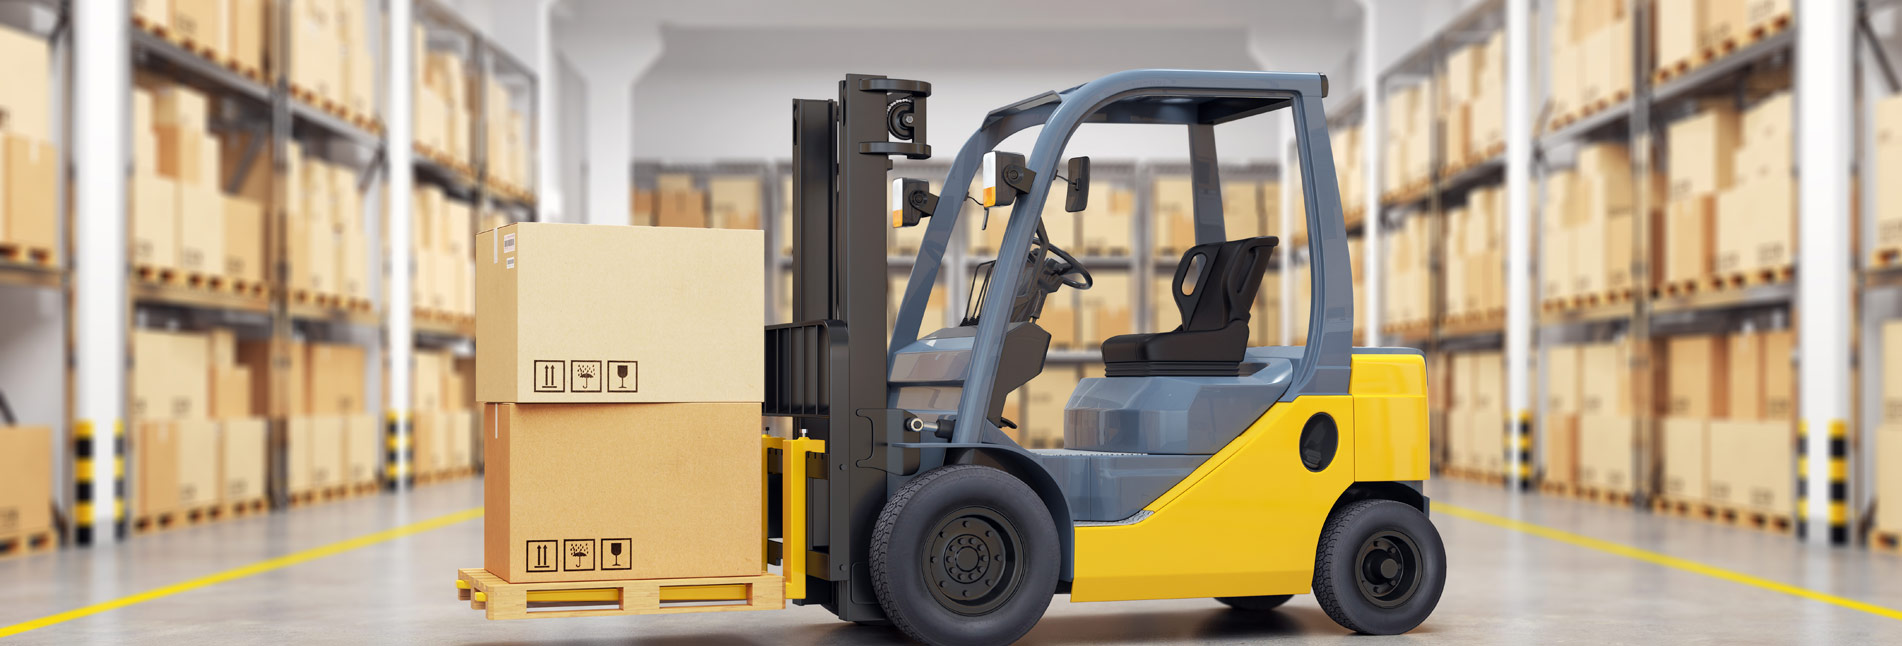 Statistics Show Forklift Truck Accidents Increasing